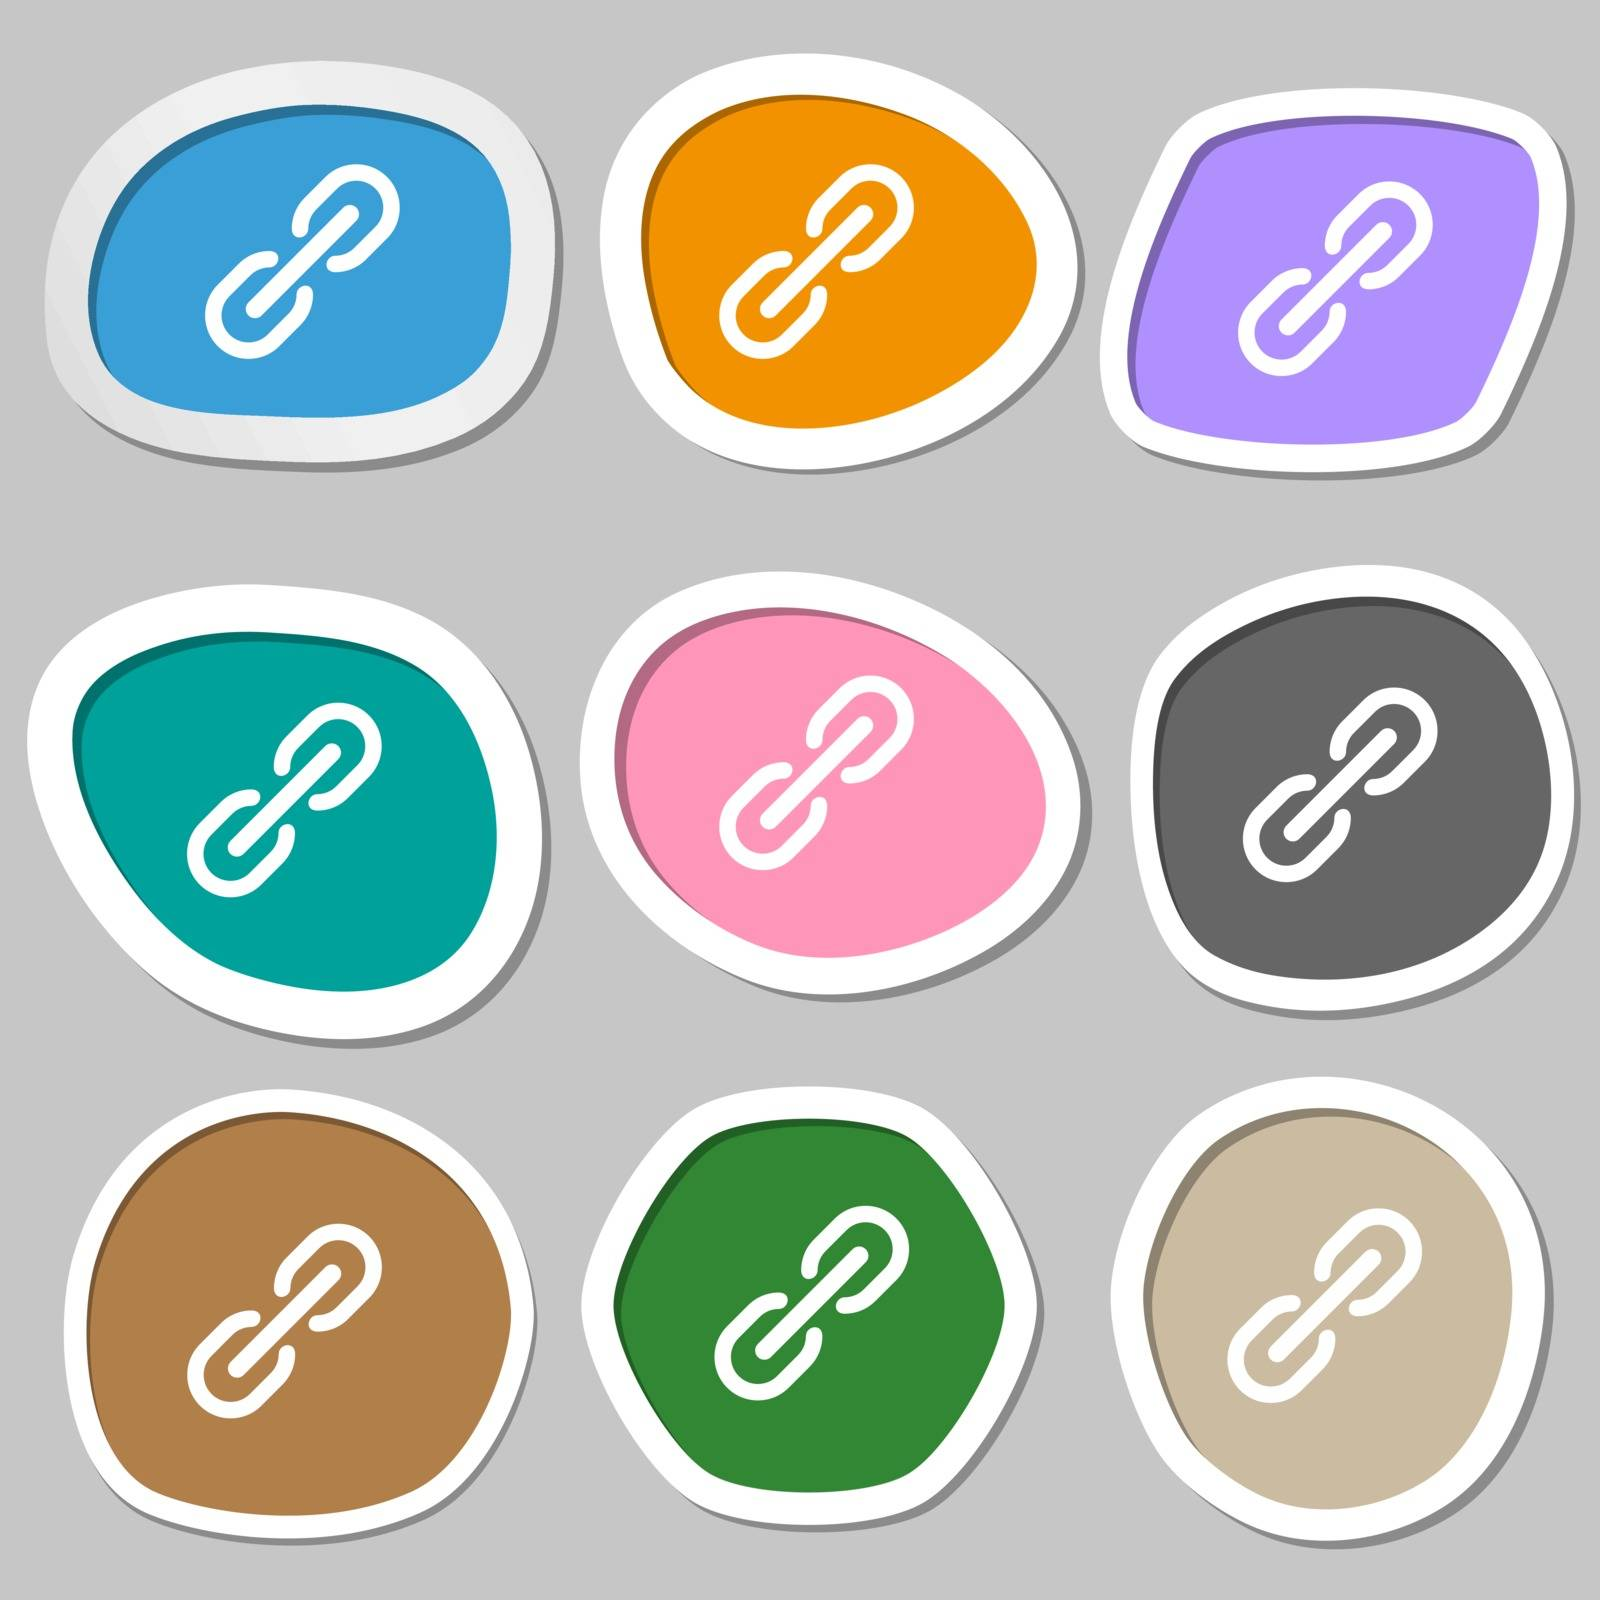 Chain Icon symbols. Multicolored paper stickers. Vector by serhii_lohvyniuk